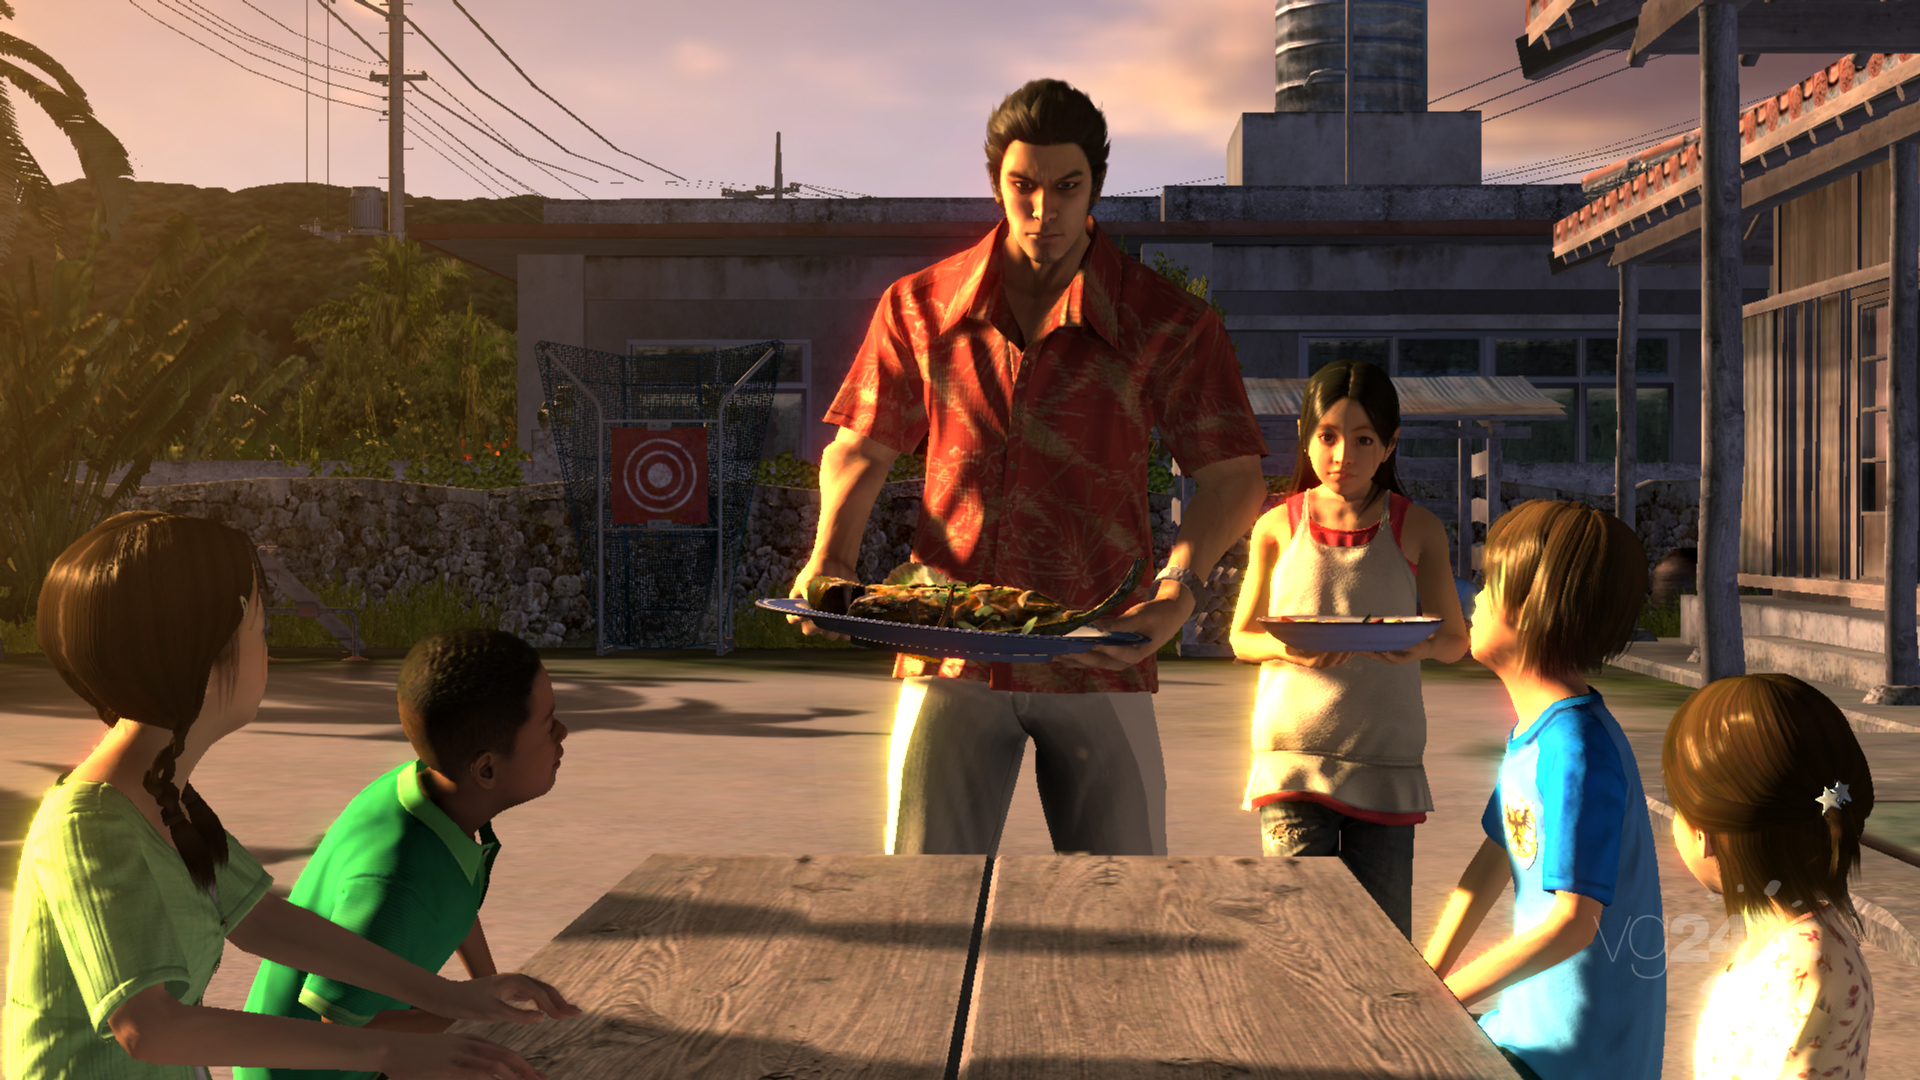 Yakuza 3 dated for March 12 in UK - VG247